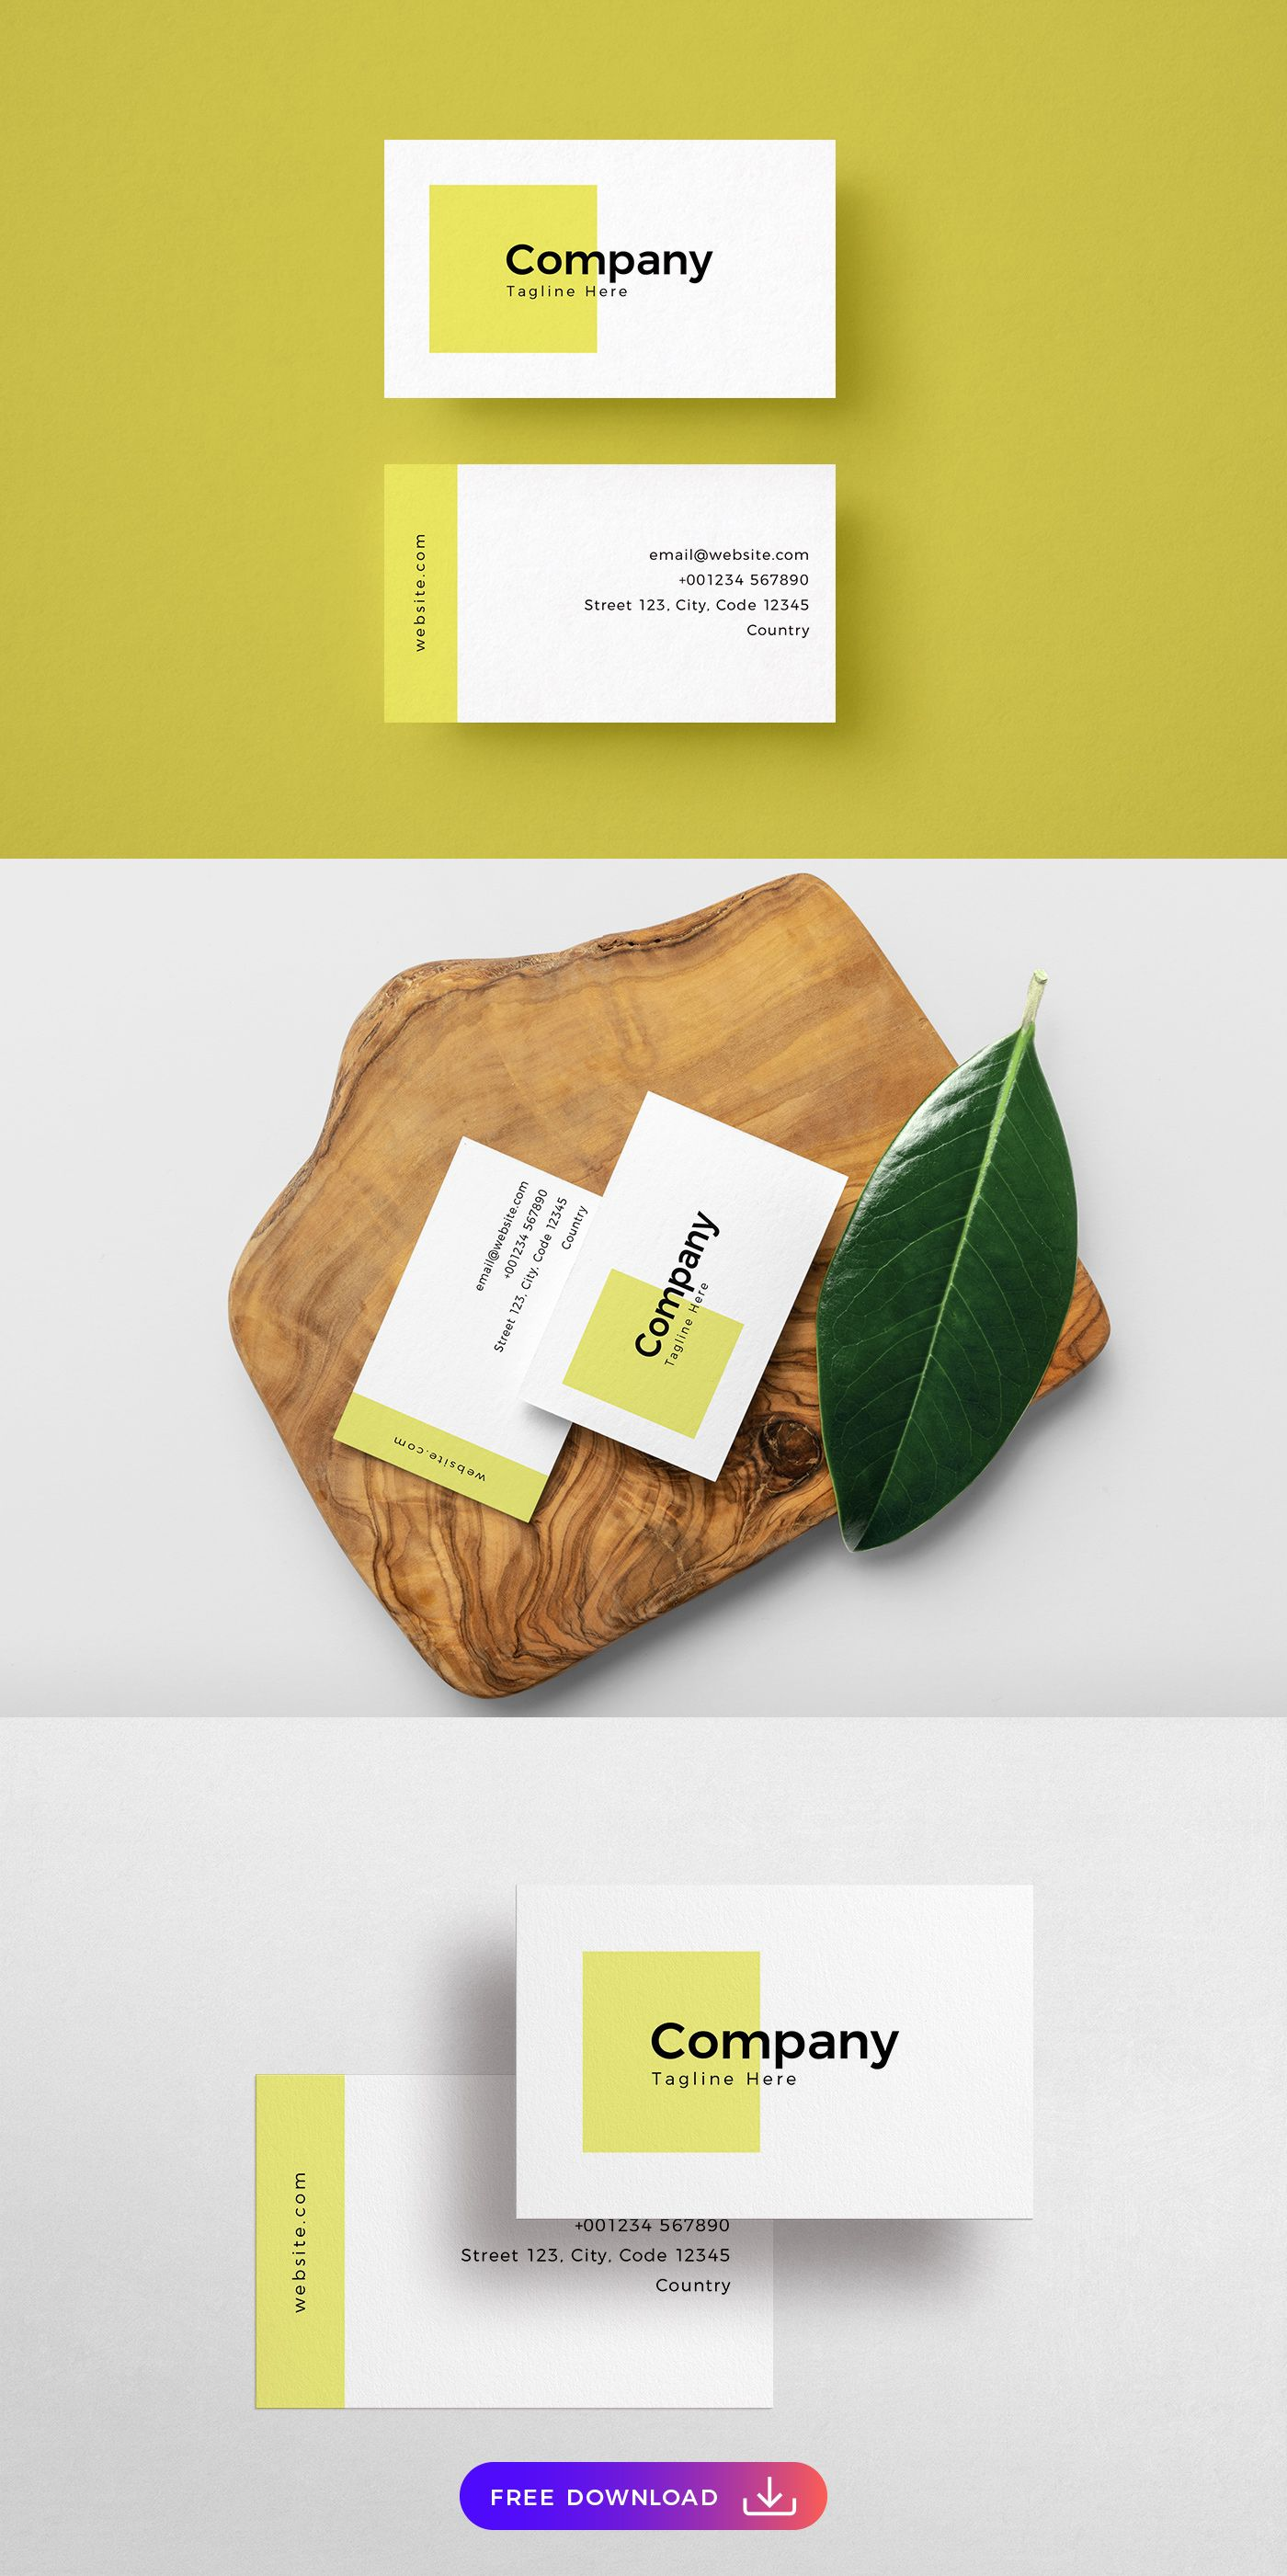 Free Simplistic Shapes Business Card Template Free Business Card Templates Free Business Cards Shaped Business Cards